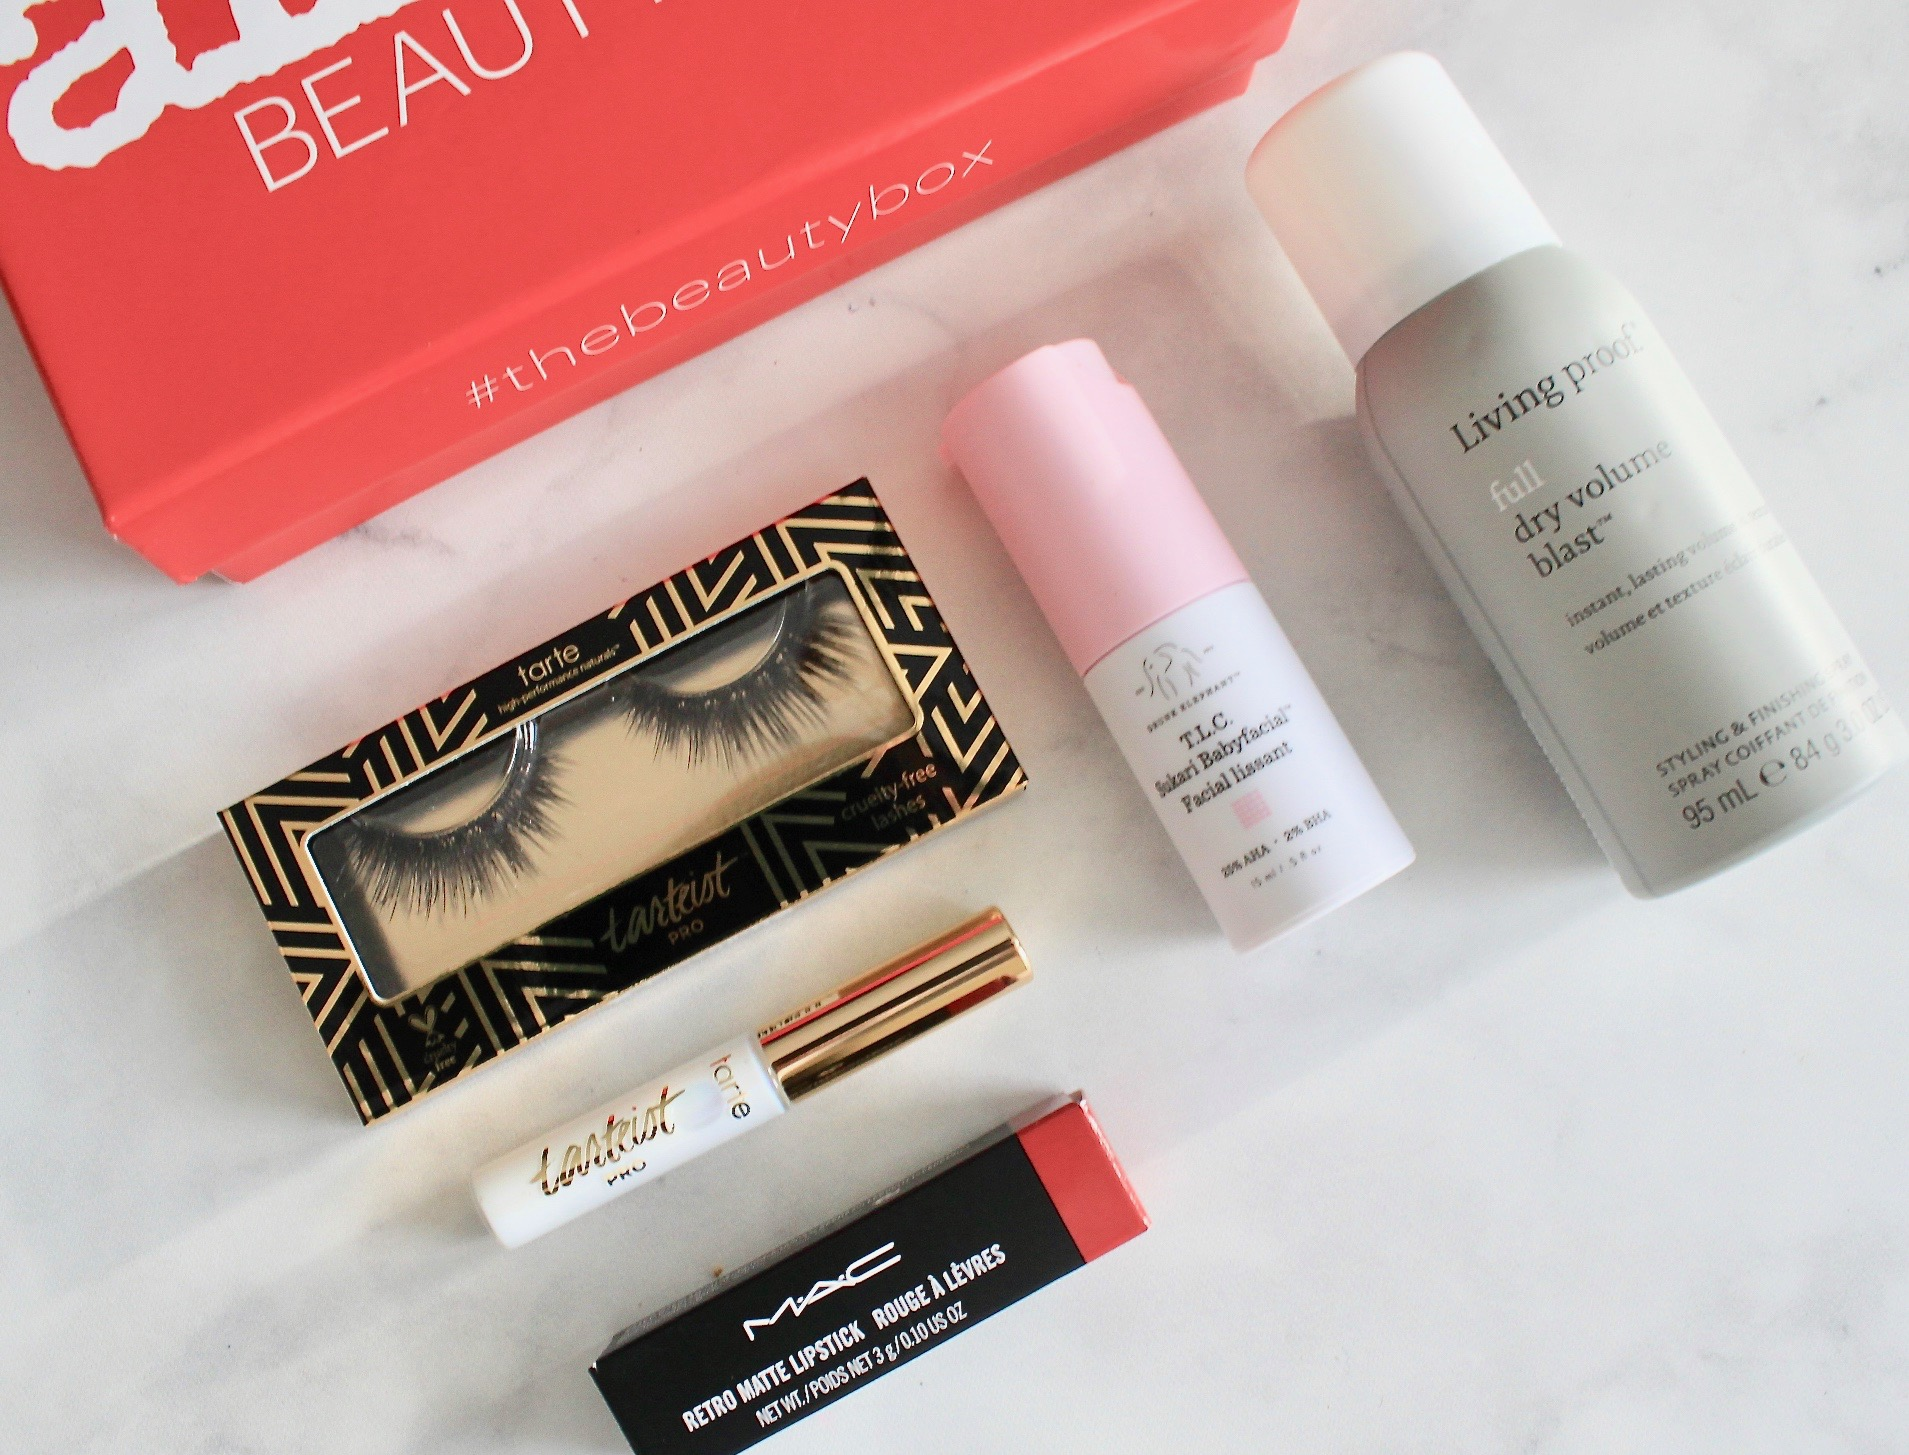 Allure Beauty Box September 2018 Subscription Review - This Mama Reviews